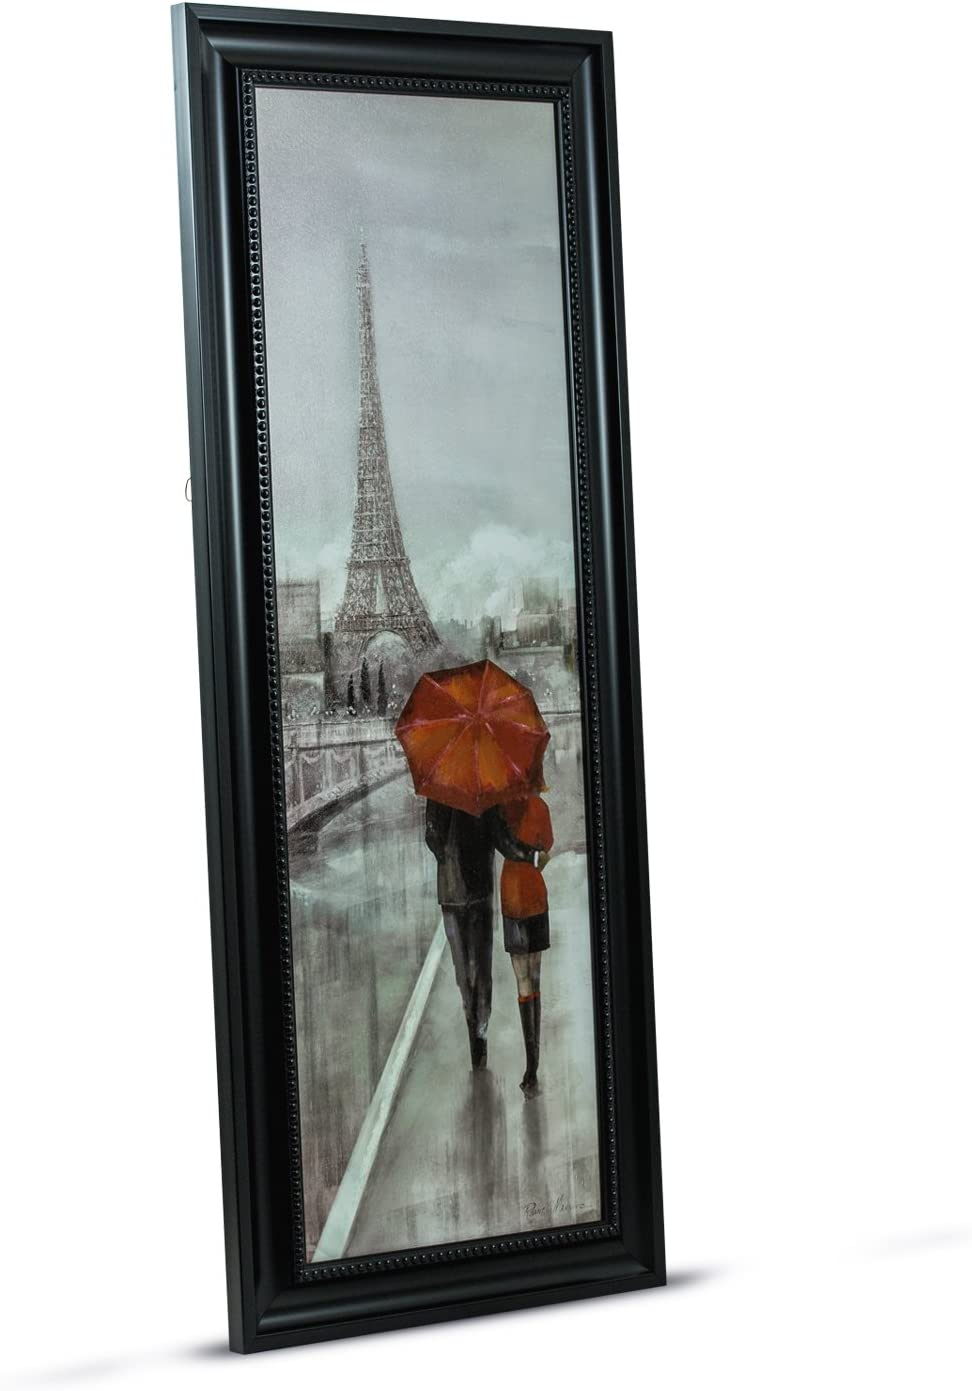 Amazon Com American Art Decor Paris Stroll By Ruane Manning Framed Painting Print On Canvas Wall Art Decor Posters Prints